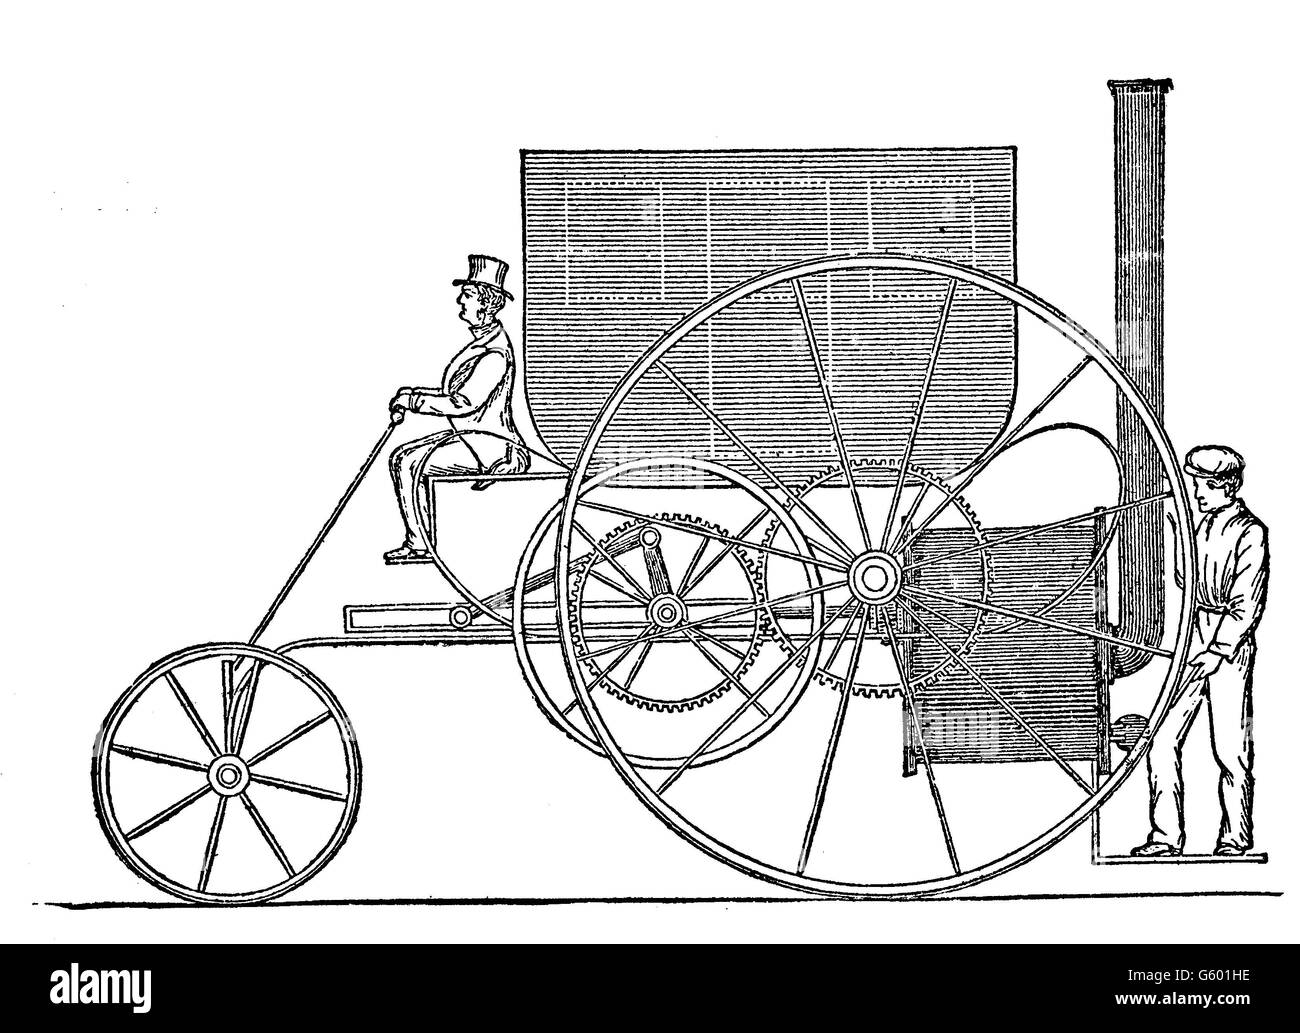 Trevithick locomotive1803. Richard Trevithick ( 1771 –1833) was a British inventor and mining engineer from Cornwall - Stock Image